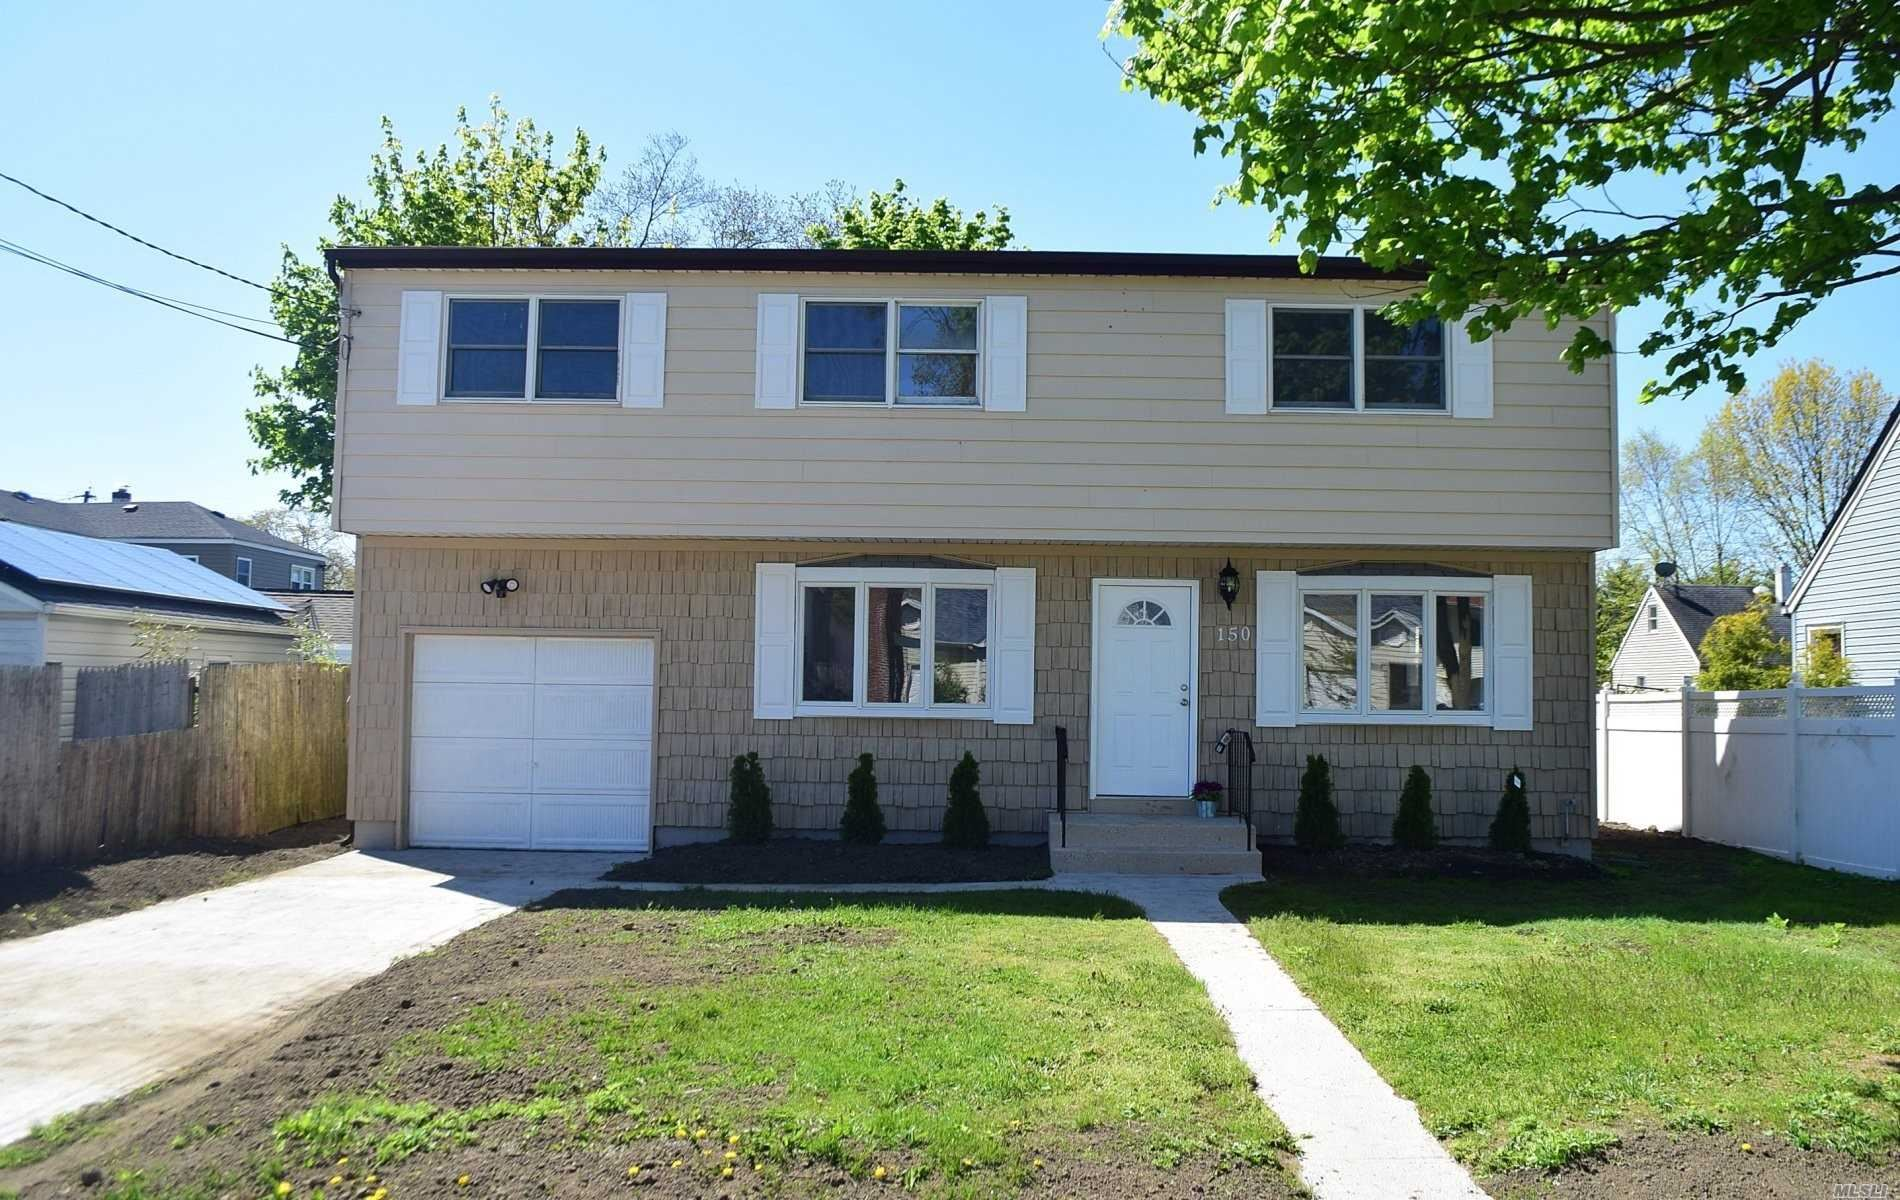 150 Brookside Ct, Copiague, NY 11726 - MLS#: 3215276